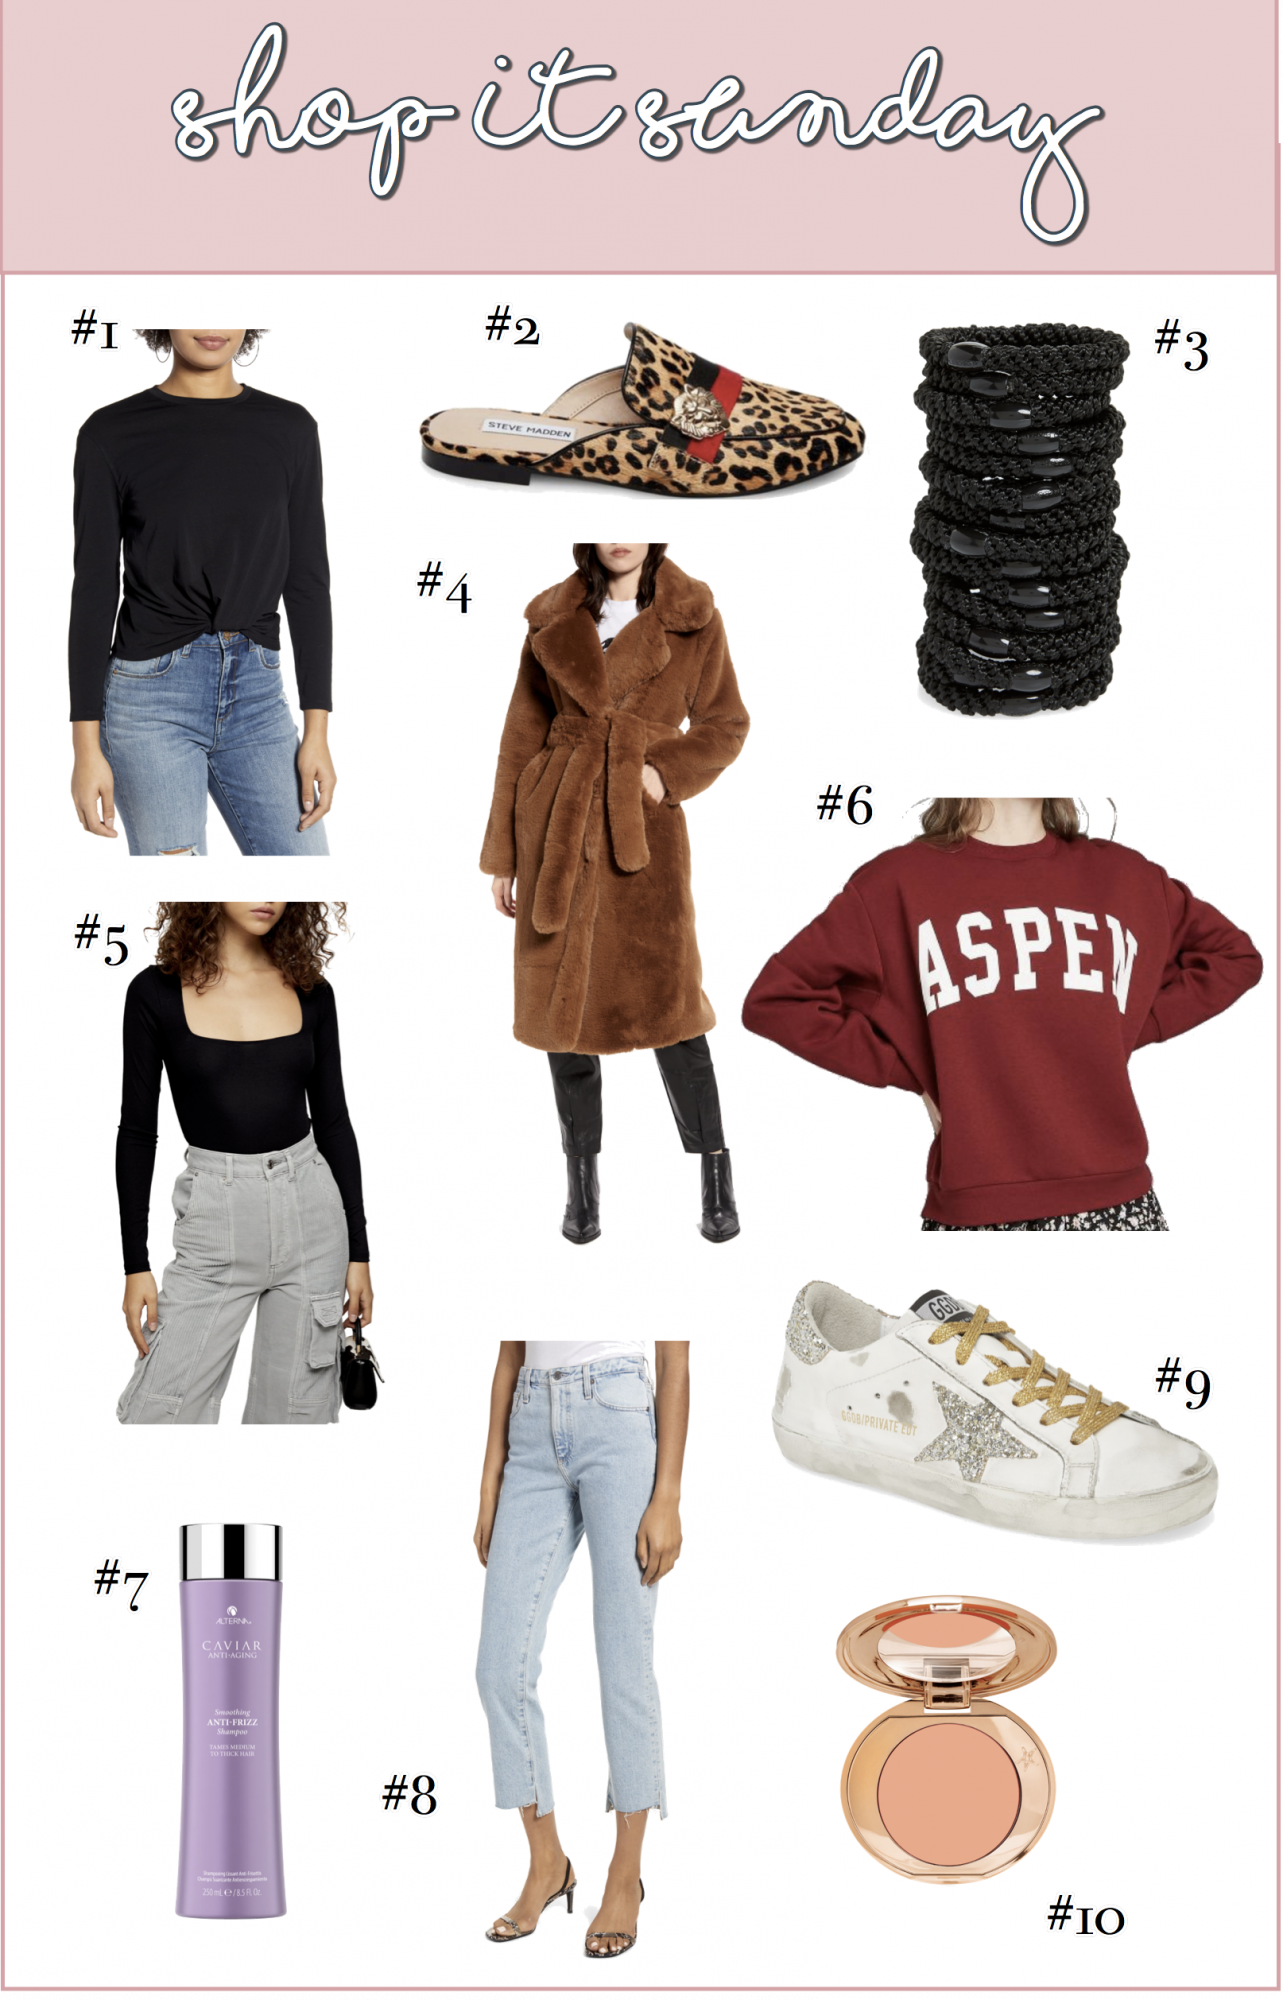 SHOP-IT SUNDAY // READERS FAVORITES FROM LAST WEEK by popular US life and style blog, The Sweetest Thing: collage image of golden good sneakers, Nordstrom Knot Front Tee BP., Steve Madden KARISMA LEOPARD, Nordstrom Longline Faux Fur Coat NA-KD, Nordstrom Long Sleeve Square Neck Bodysuit TOPSHOP, Target Wild Fable Women's Oversized Crewneck Aspen Graphic Sweatshirt, Nordstrom Caviar Anti-Aging Anti-Frizz Shampoo ALTERNA, and Nordstrom Magic Vanish! Color Corrector CHARLOTTE TILBURY.